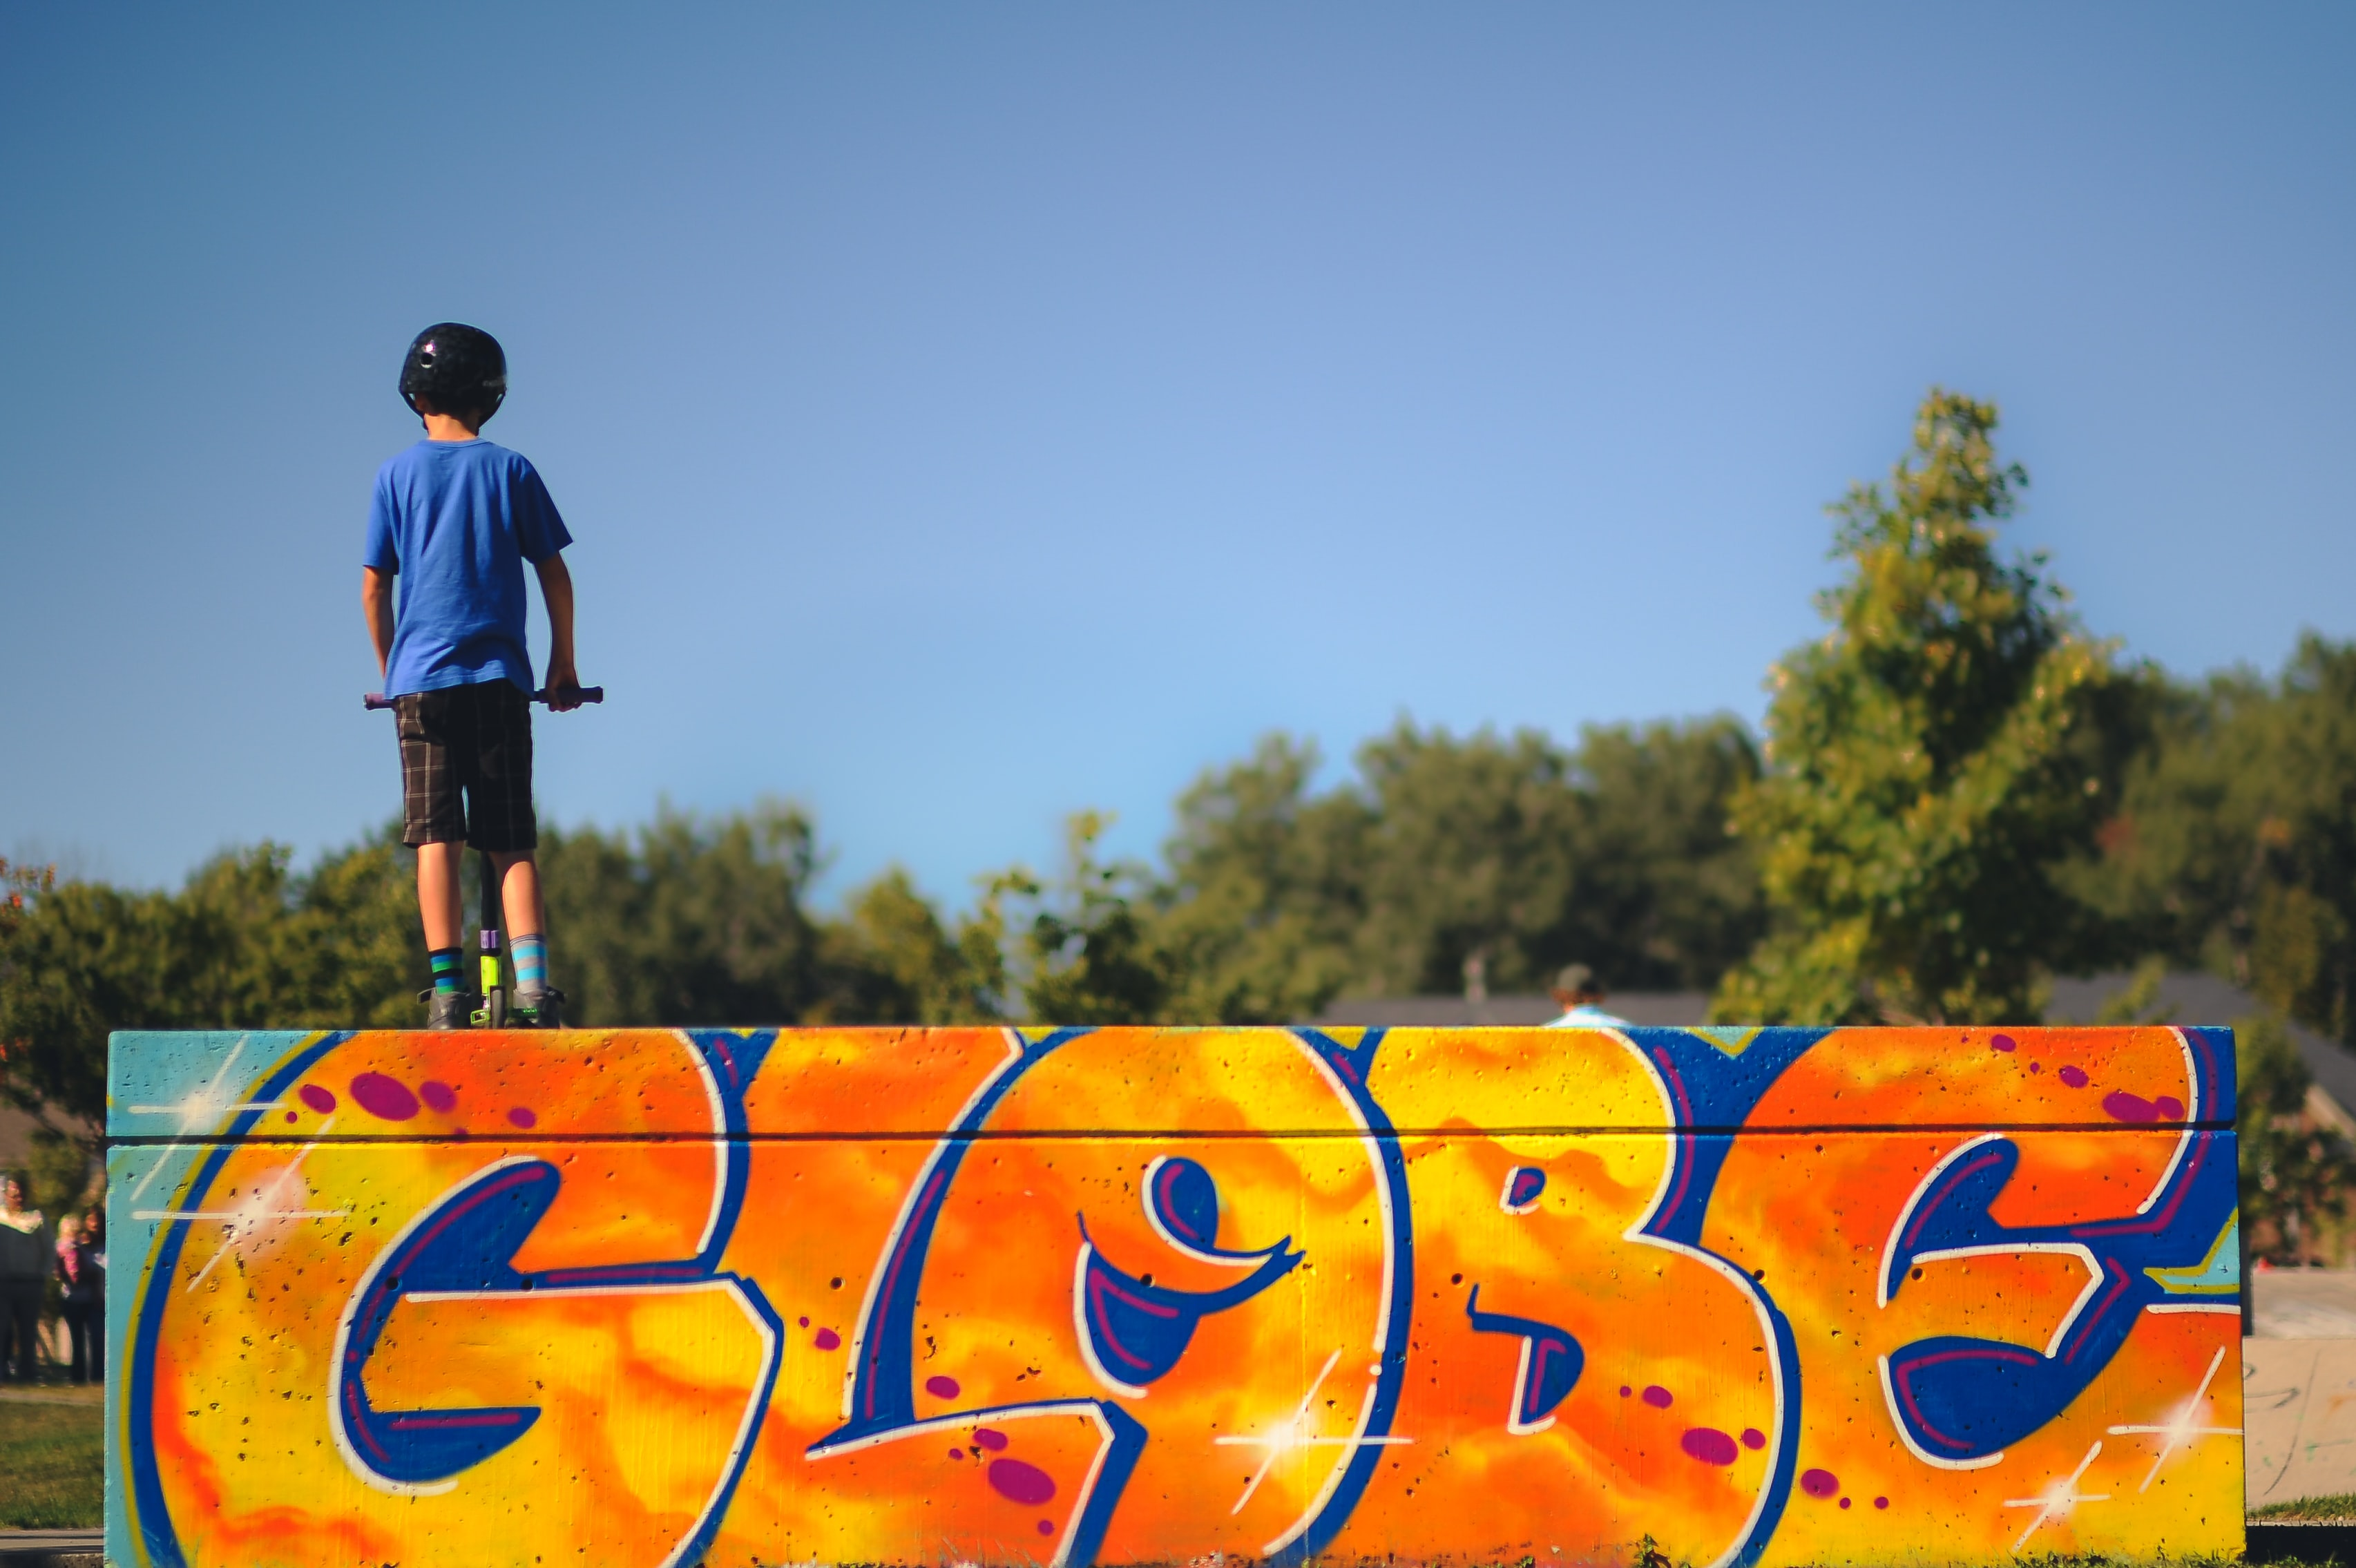 Young child stands atop a graffiti ramp at a skate park